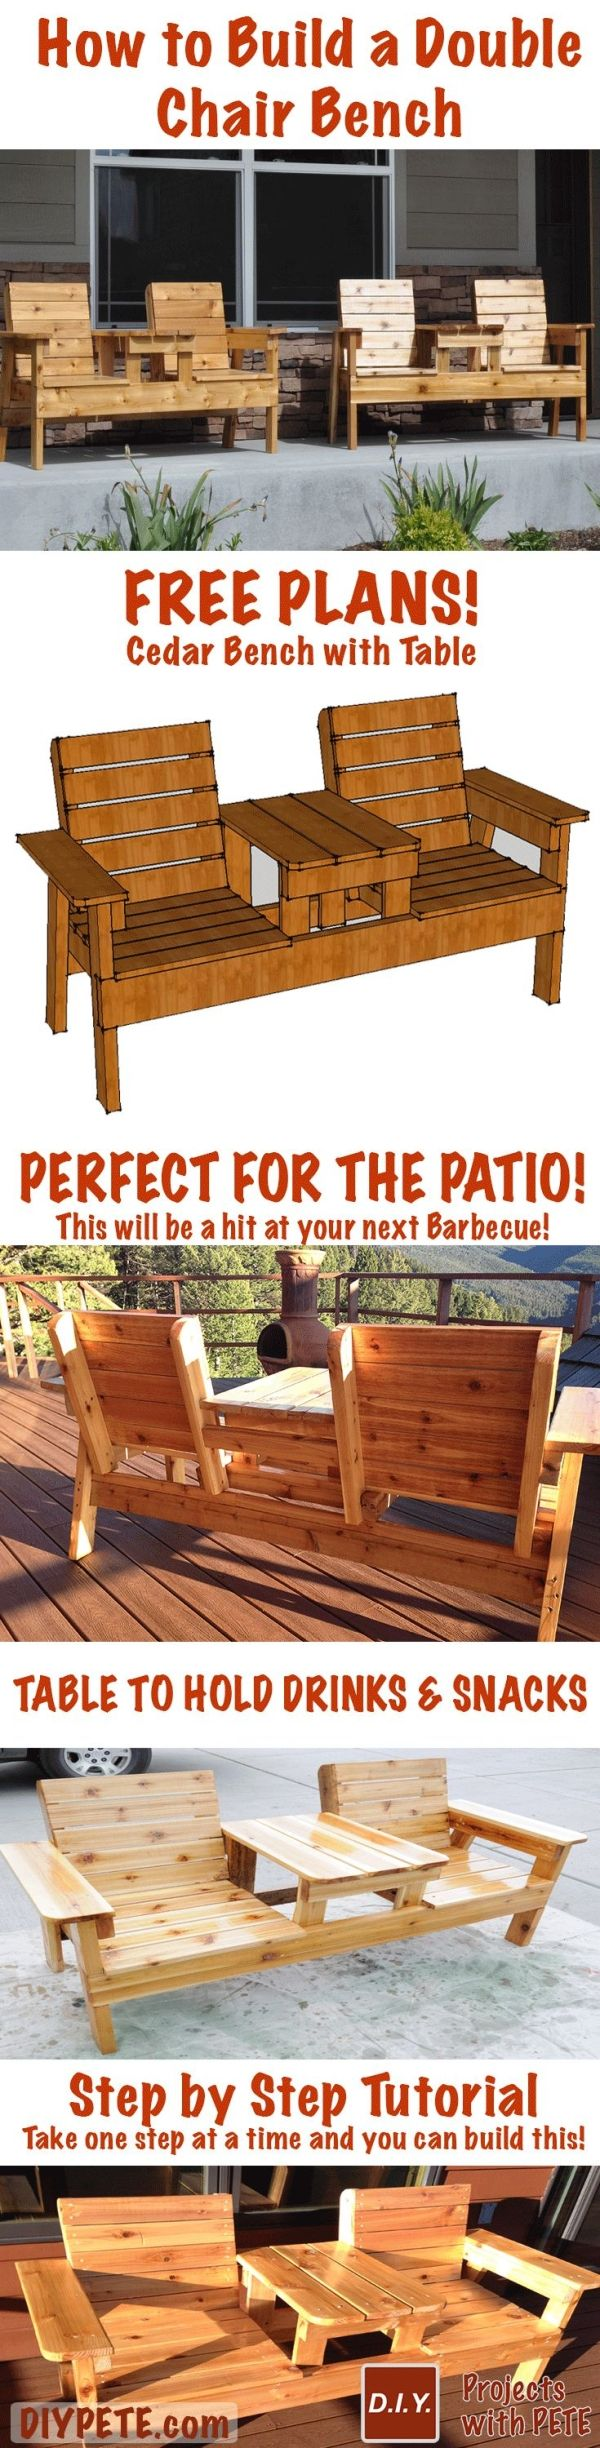 Build your own Double Bench Chair with FREE plans and a 15 minute video tutorial that breaks this project down into easy steps so you can take action and build this project for your patio! by LiveLoveLaughMyLife